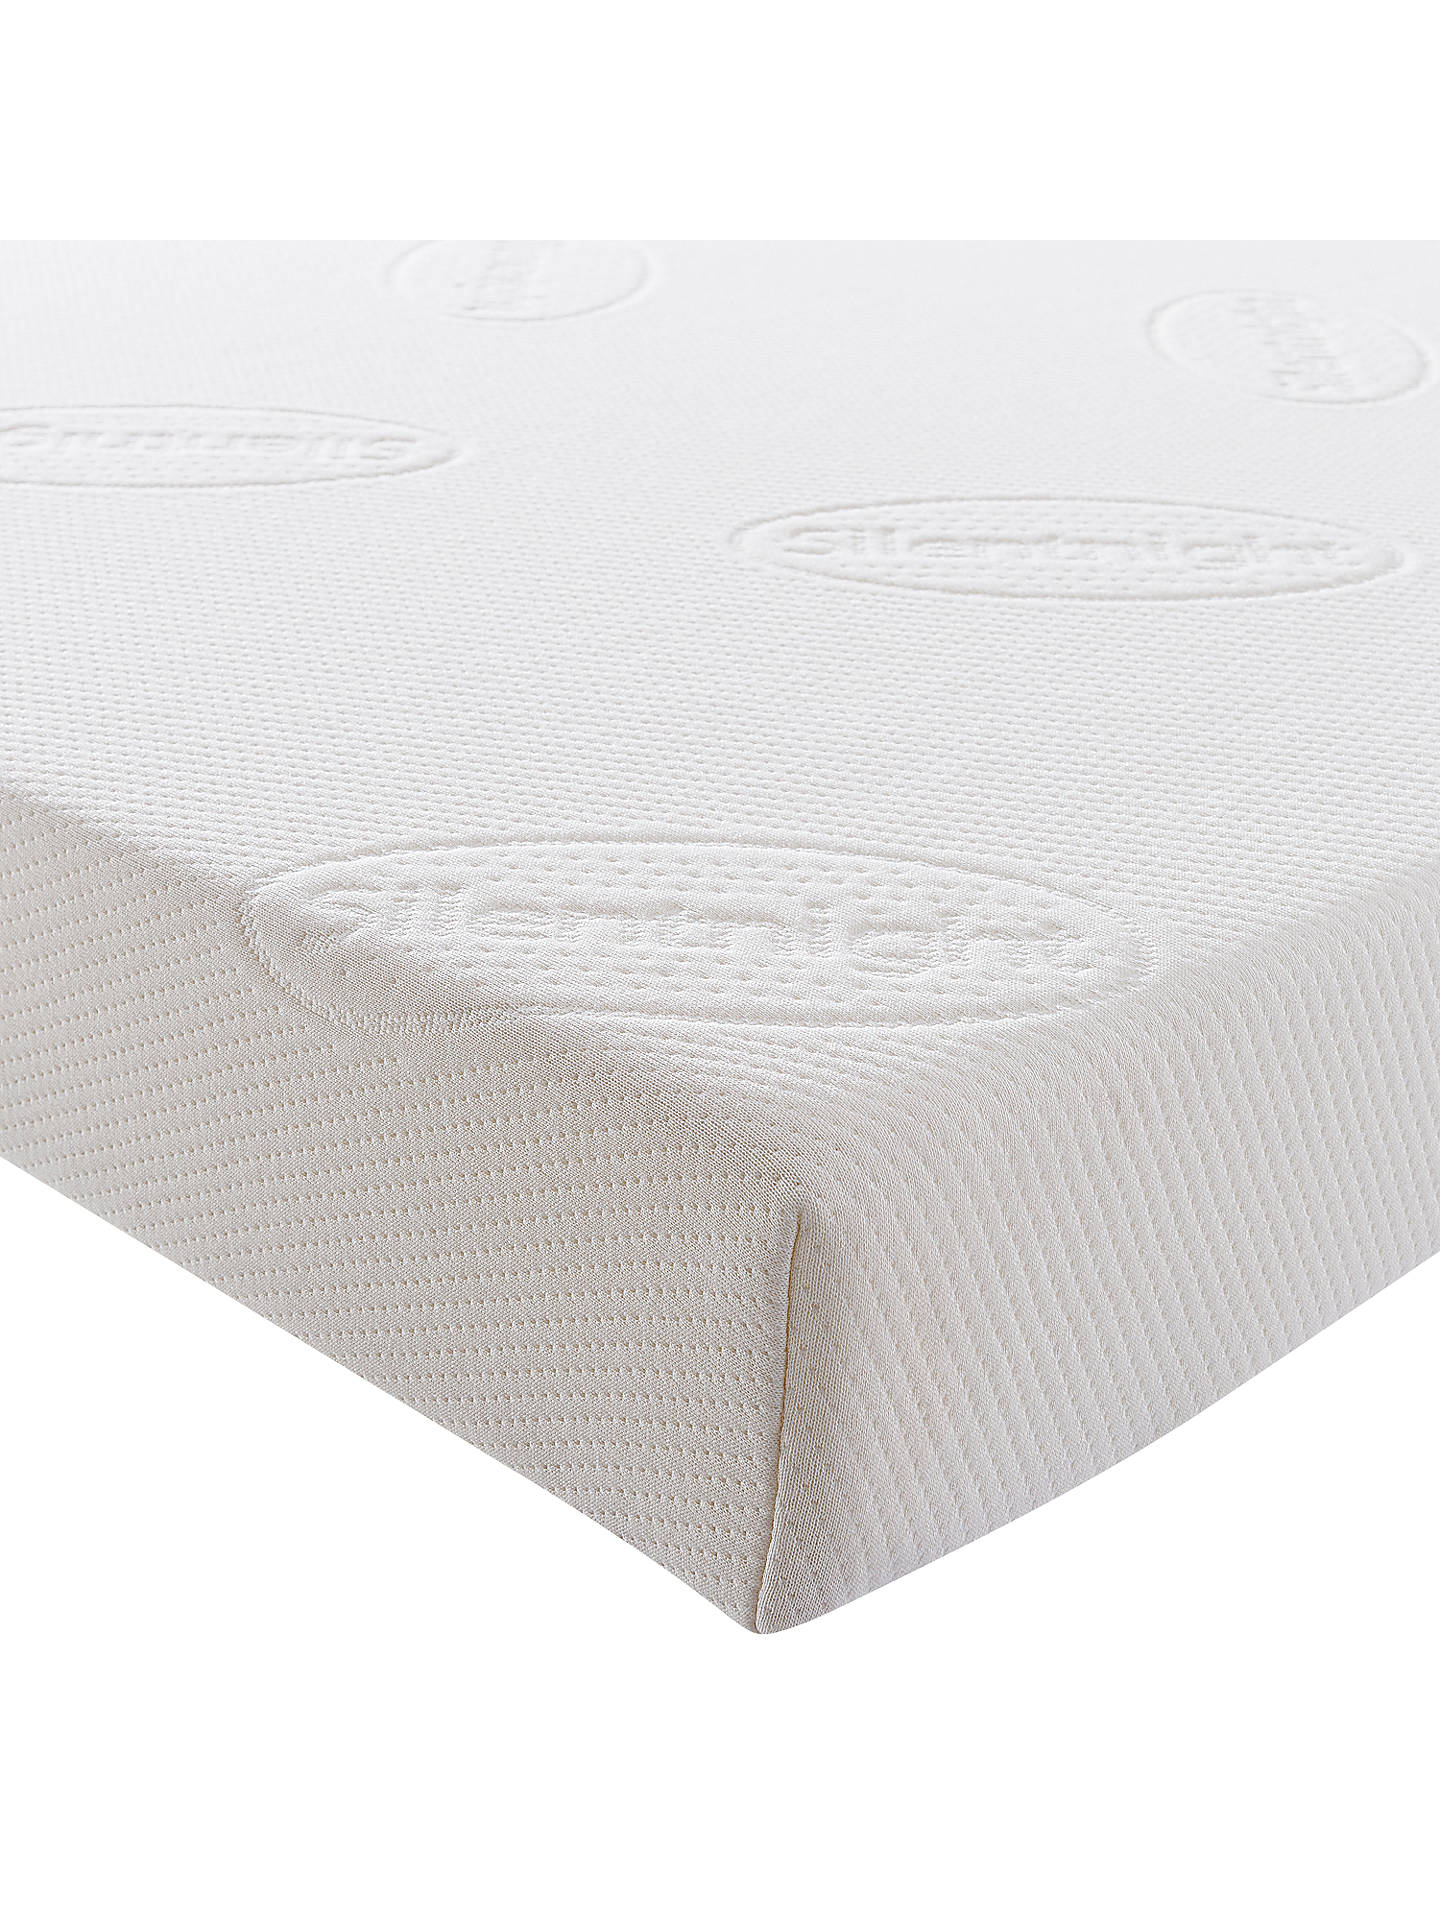 Silentnight Rolled Foam Junior Bunk Bed Mattress Medium Single At